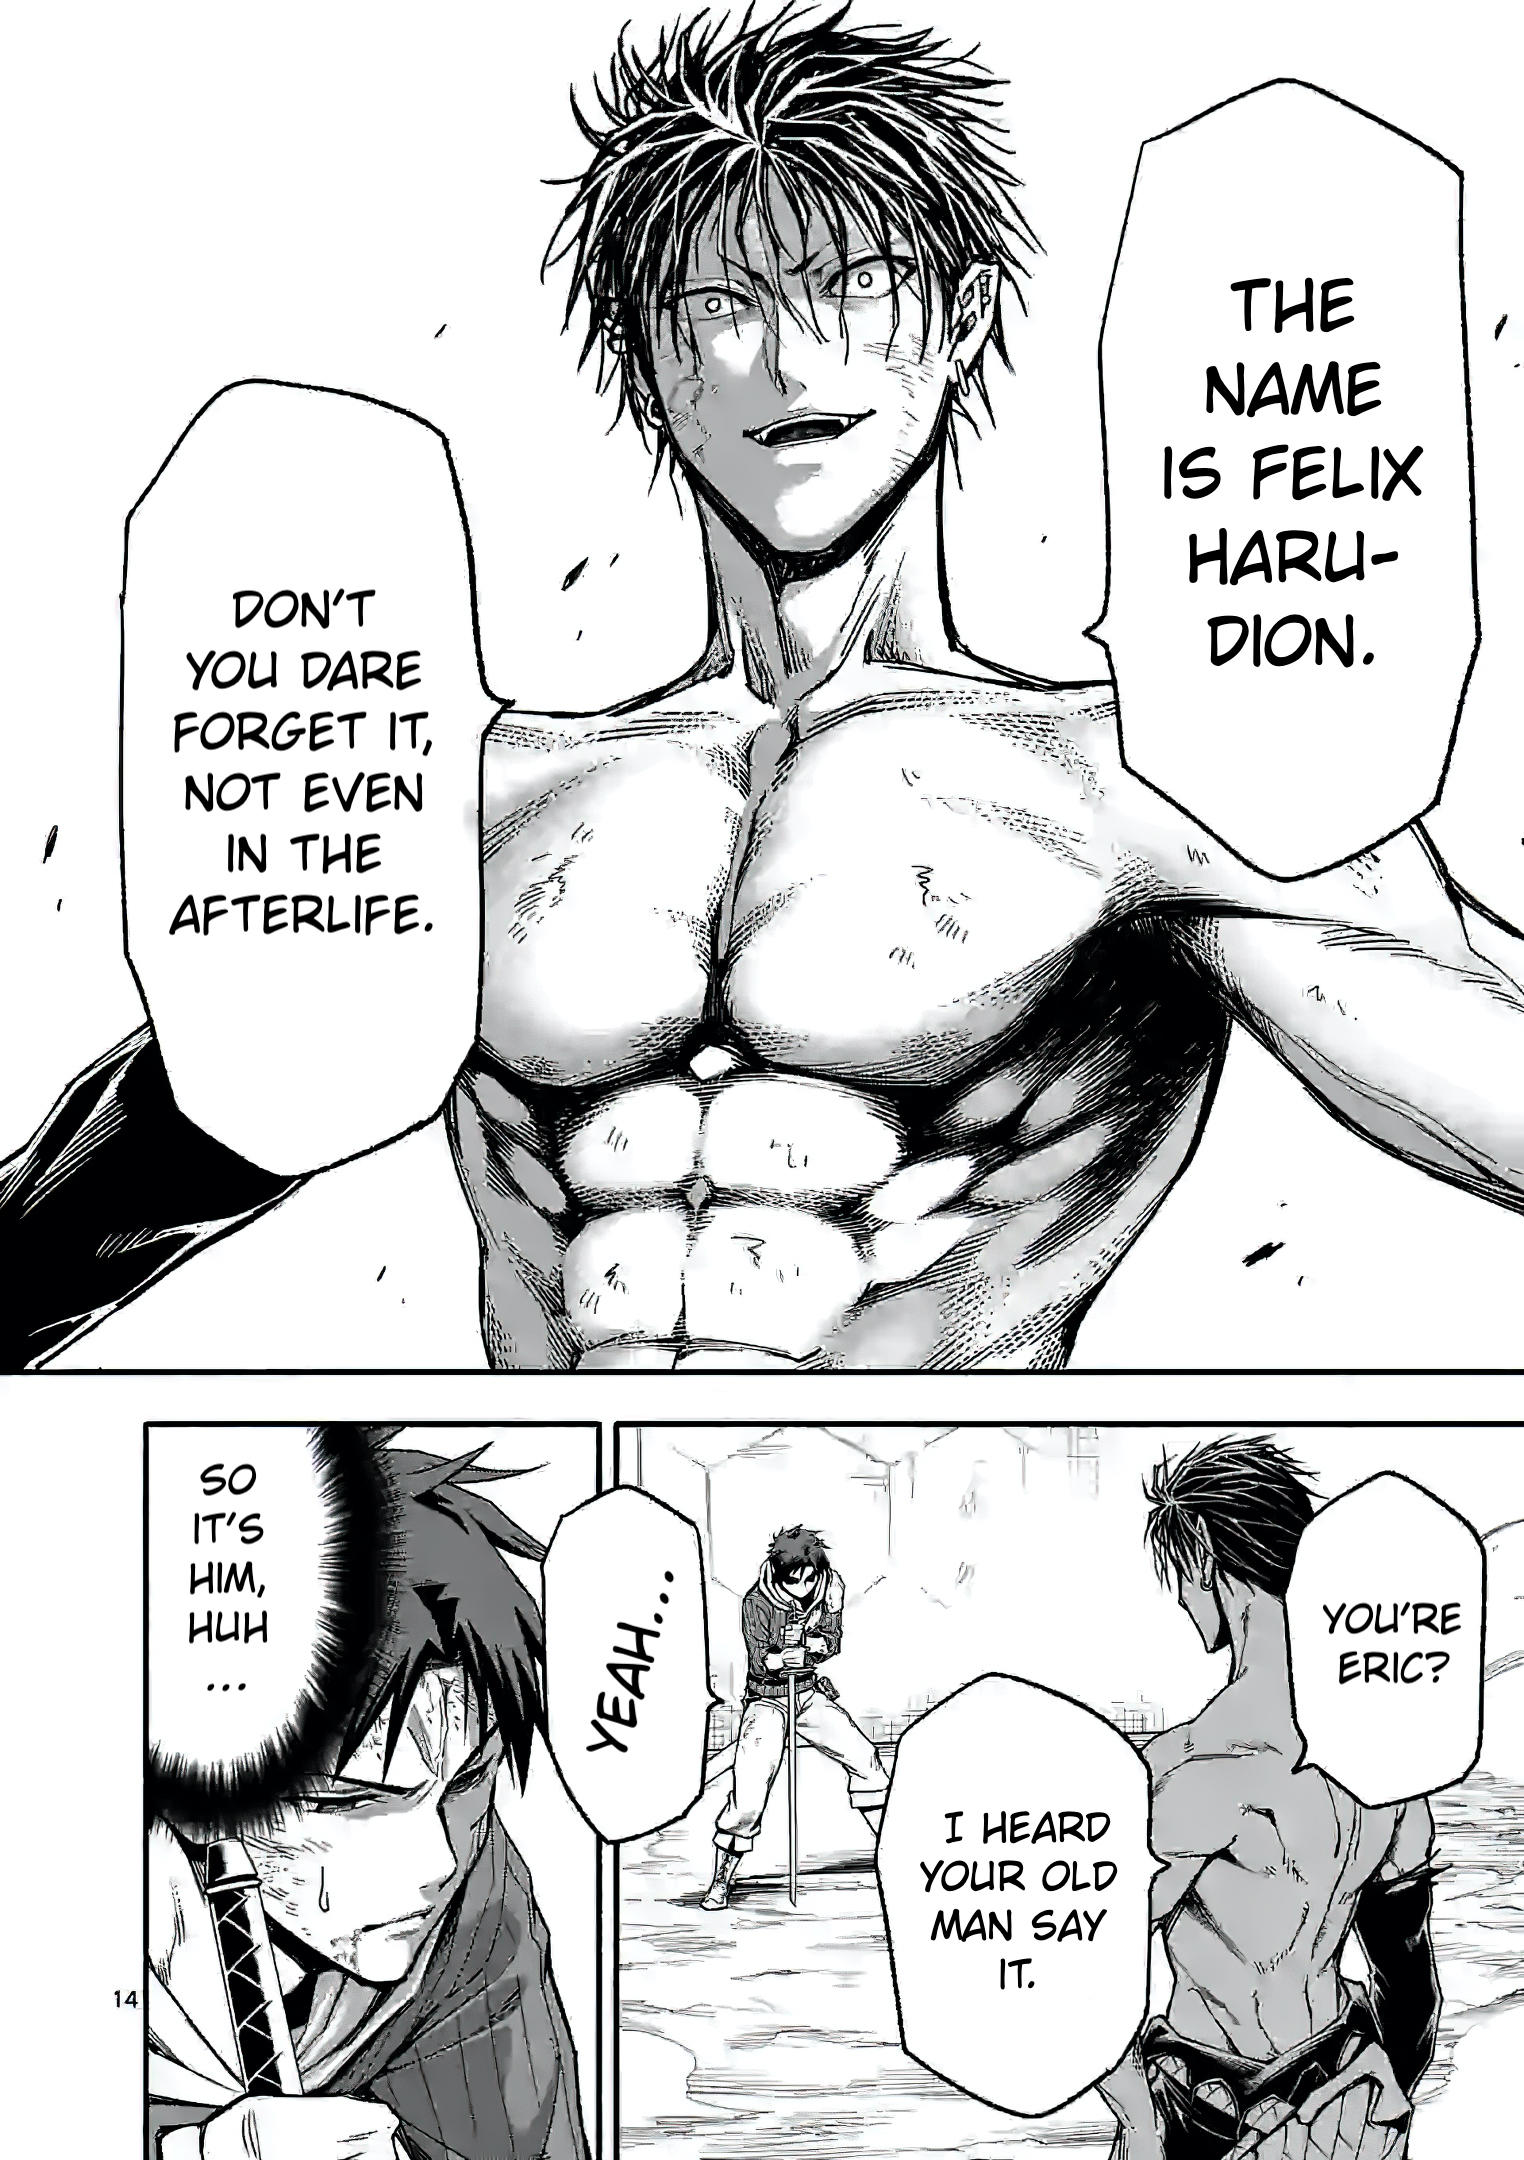 After Being Reborn, I Became The Strongest To Save Everyone Chapter 15 page 15 - Mangakakalots.com